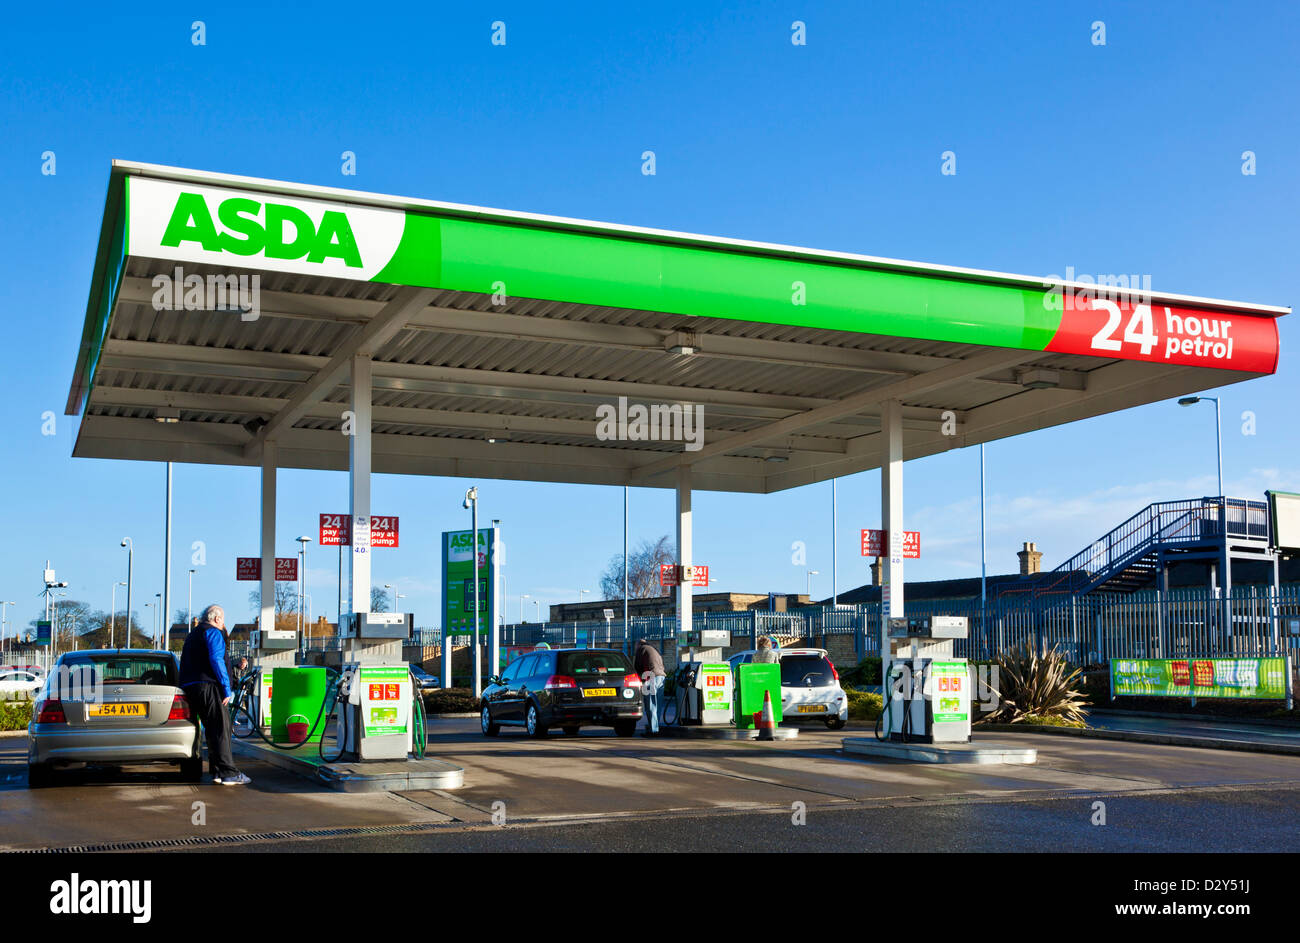 asda petrol station forecourt with man putting petrol in his car uk - Stock Image